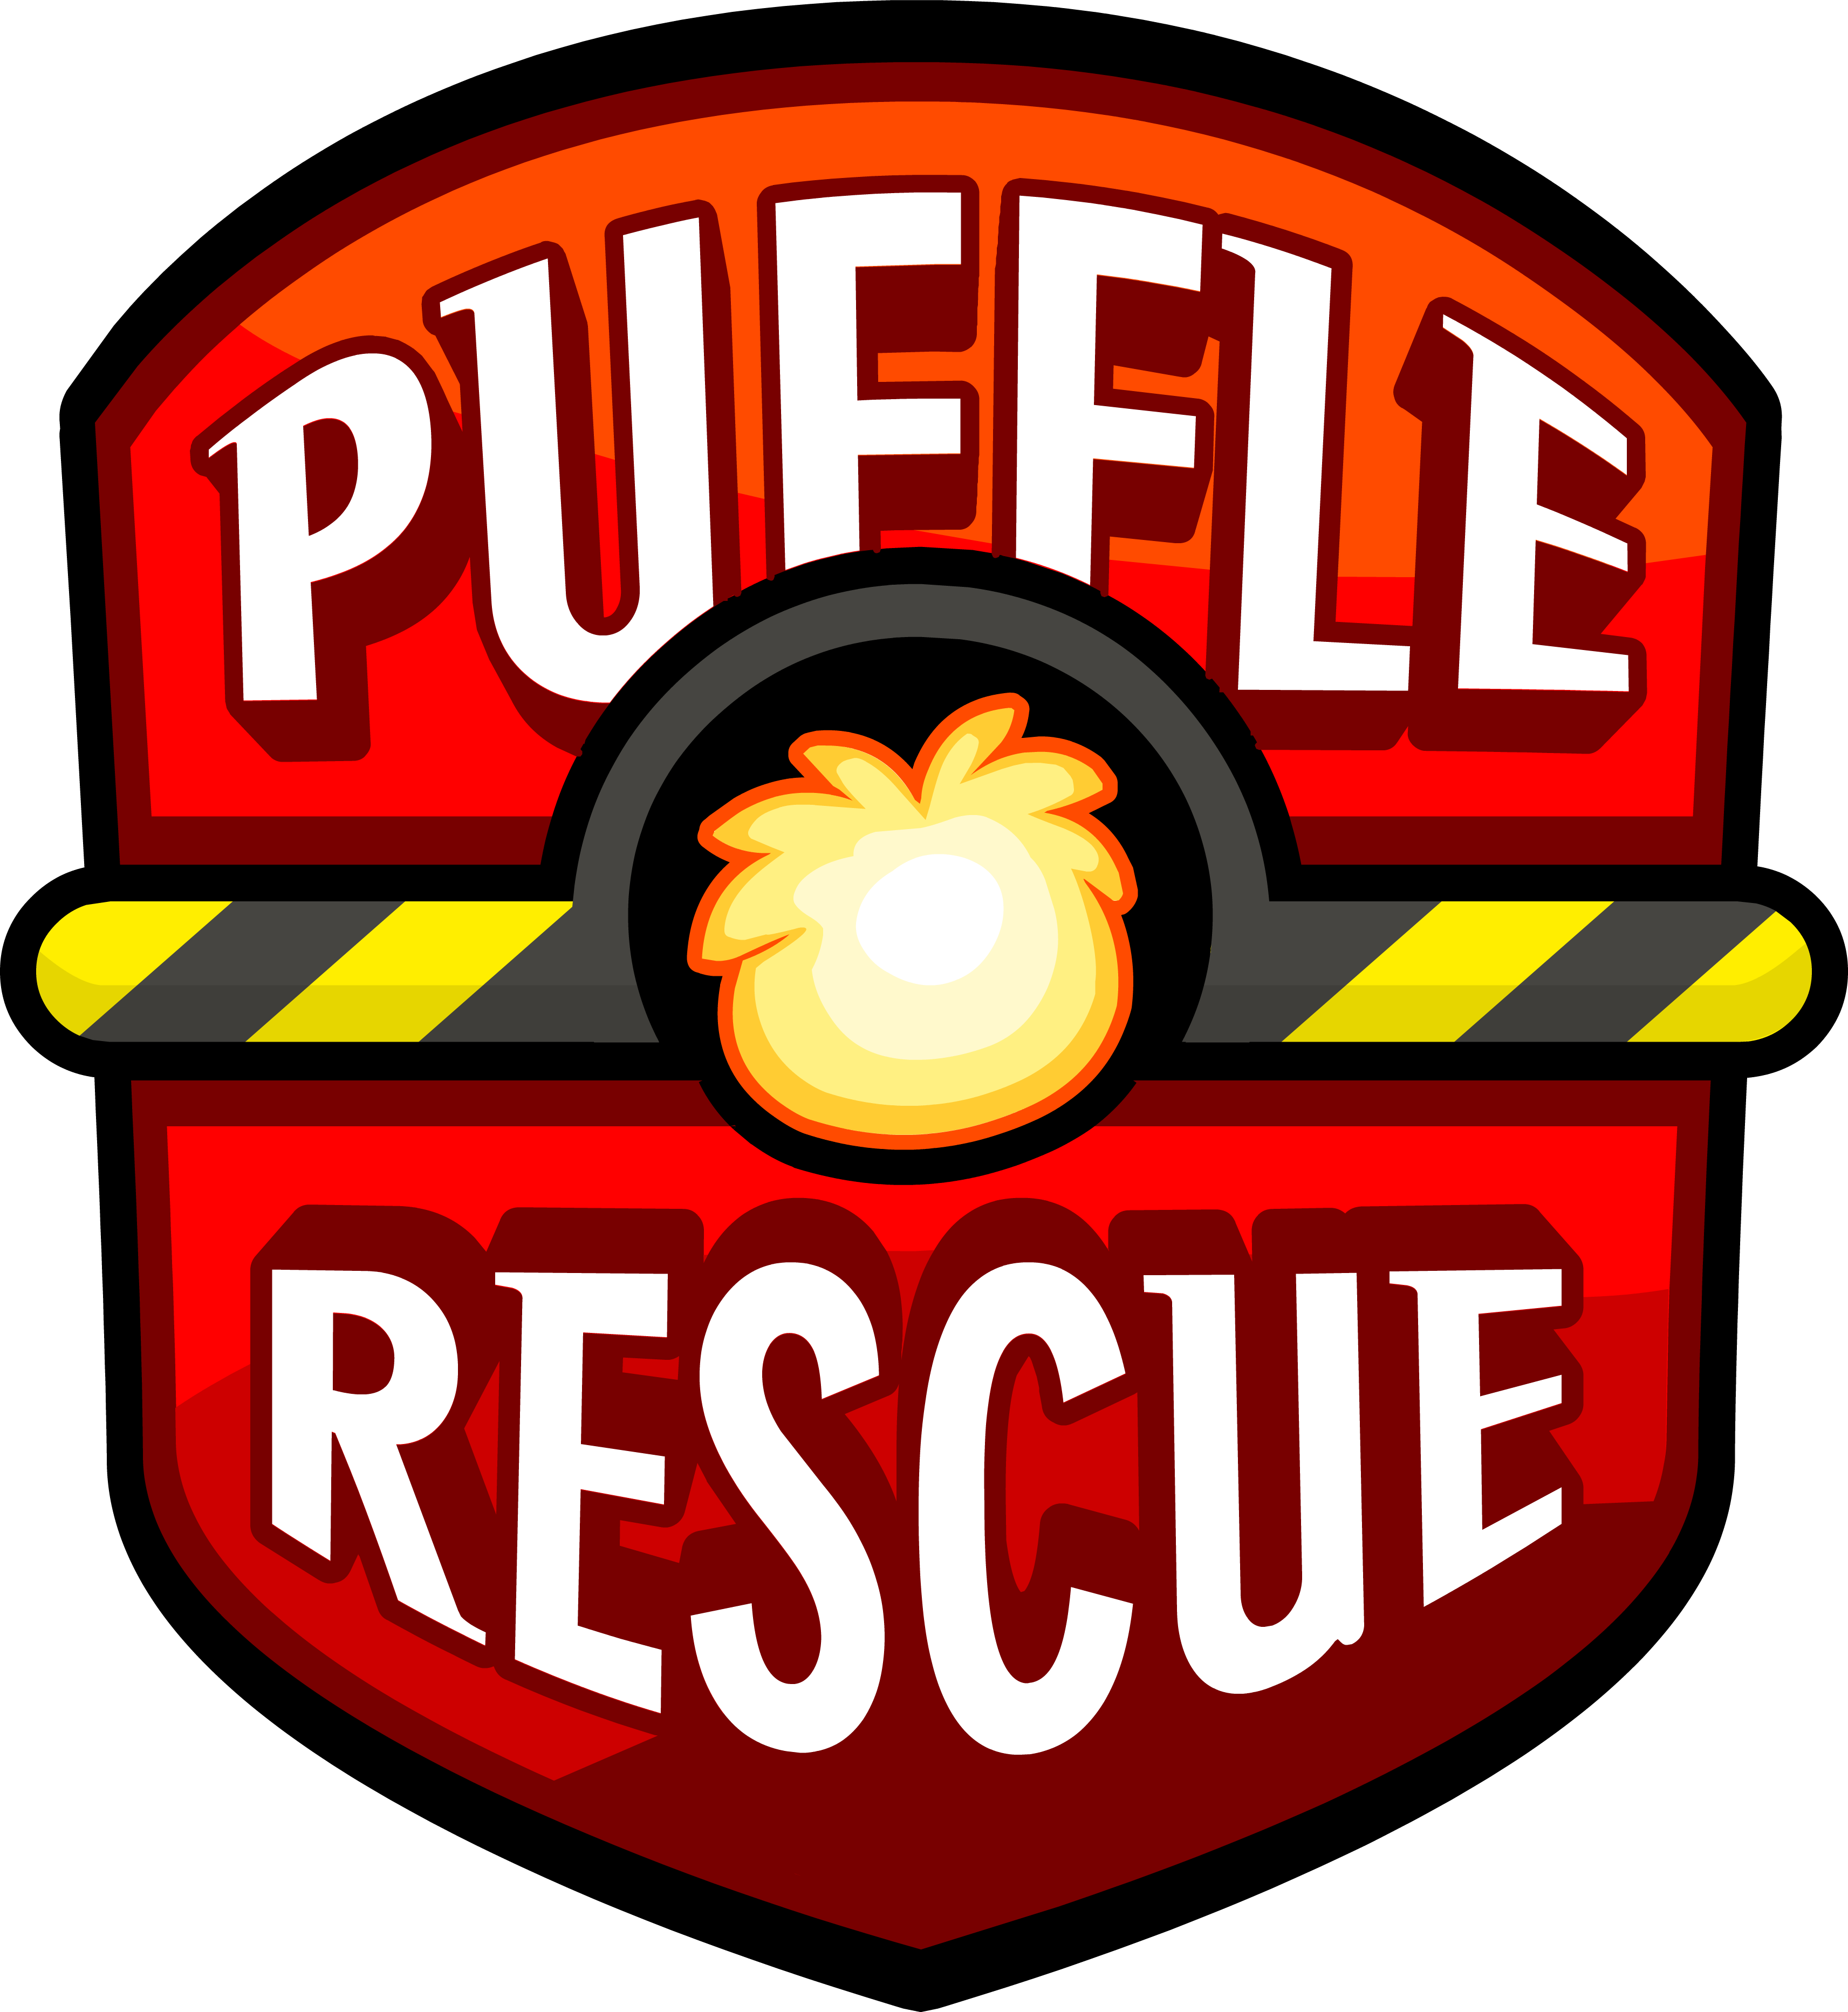 Puffle Rescue logo.png